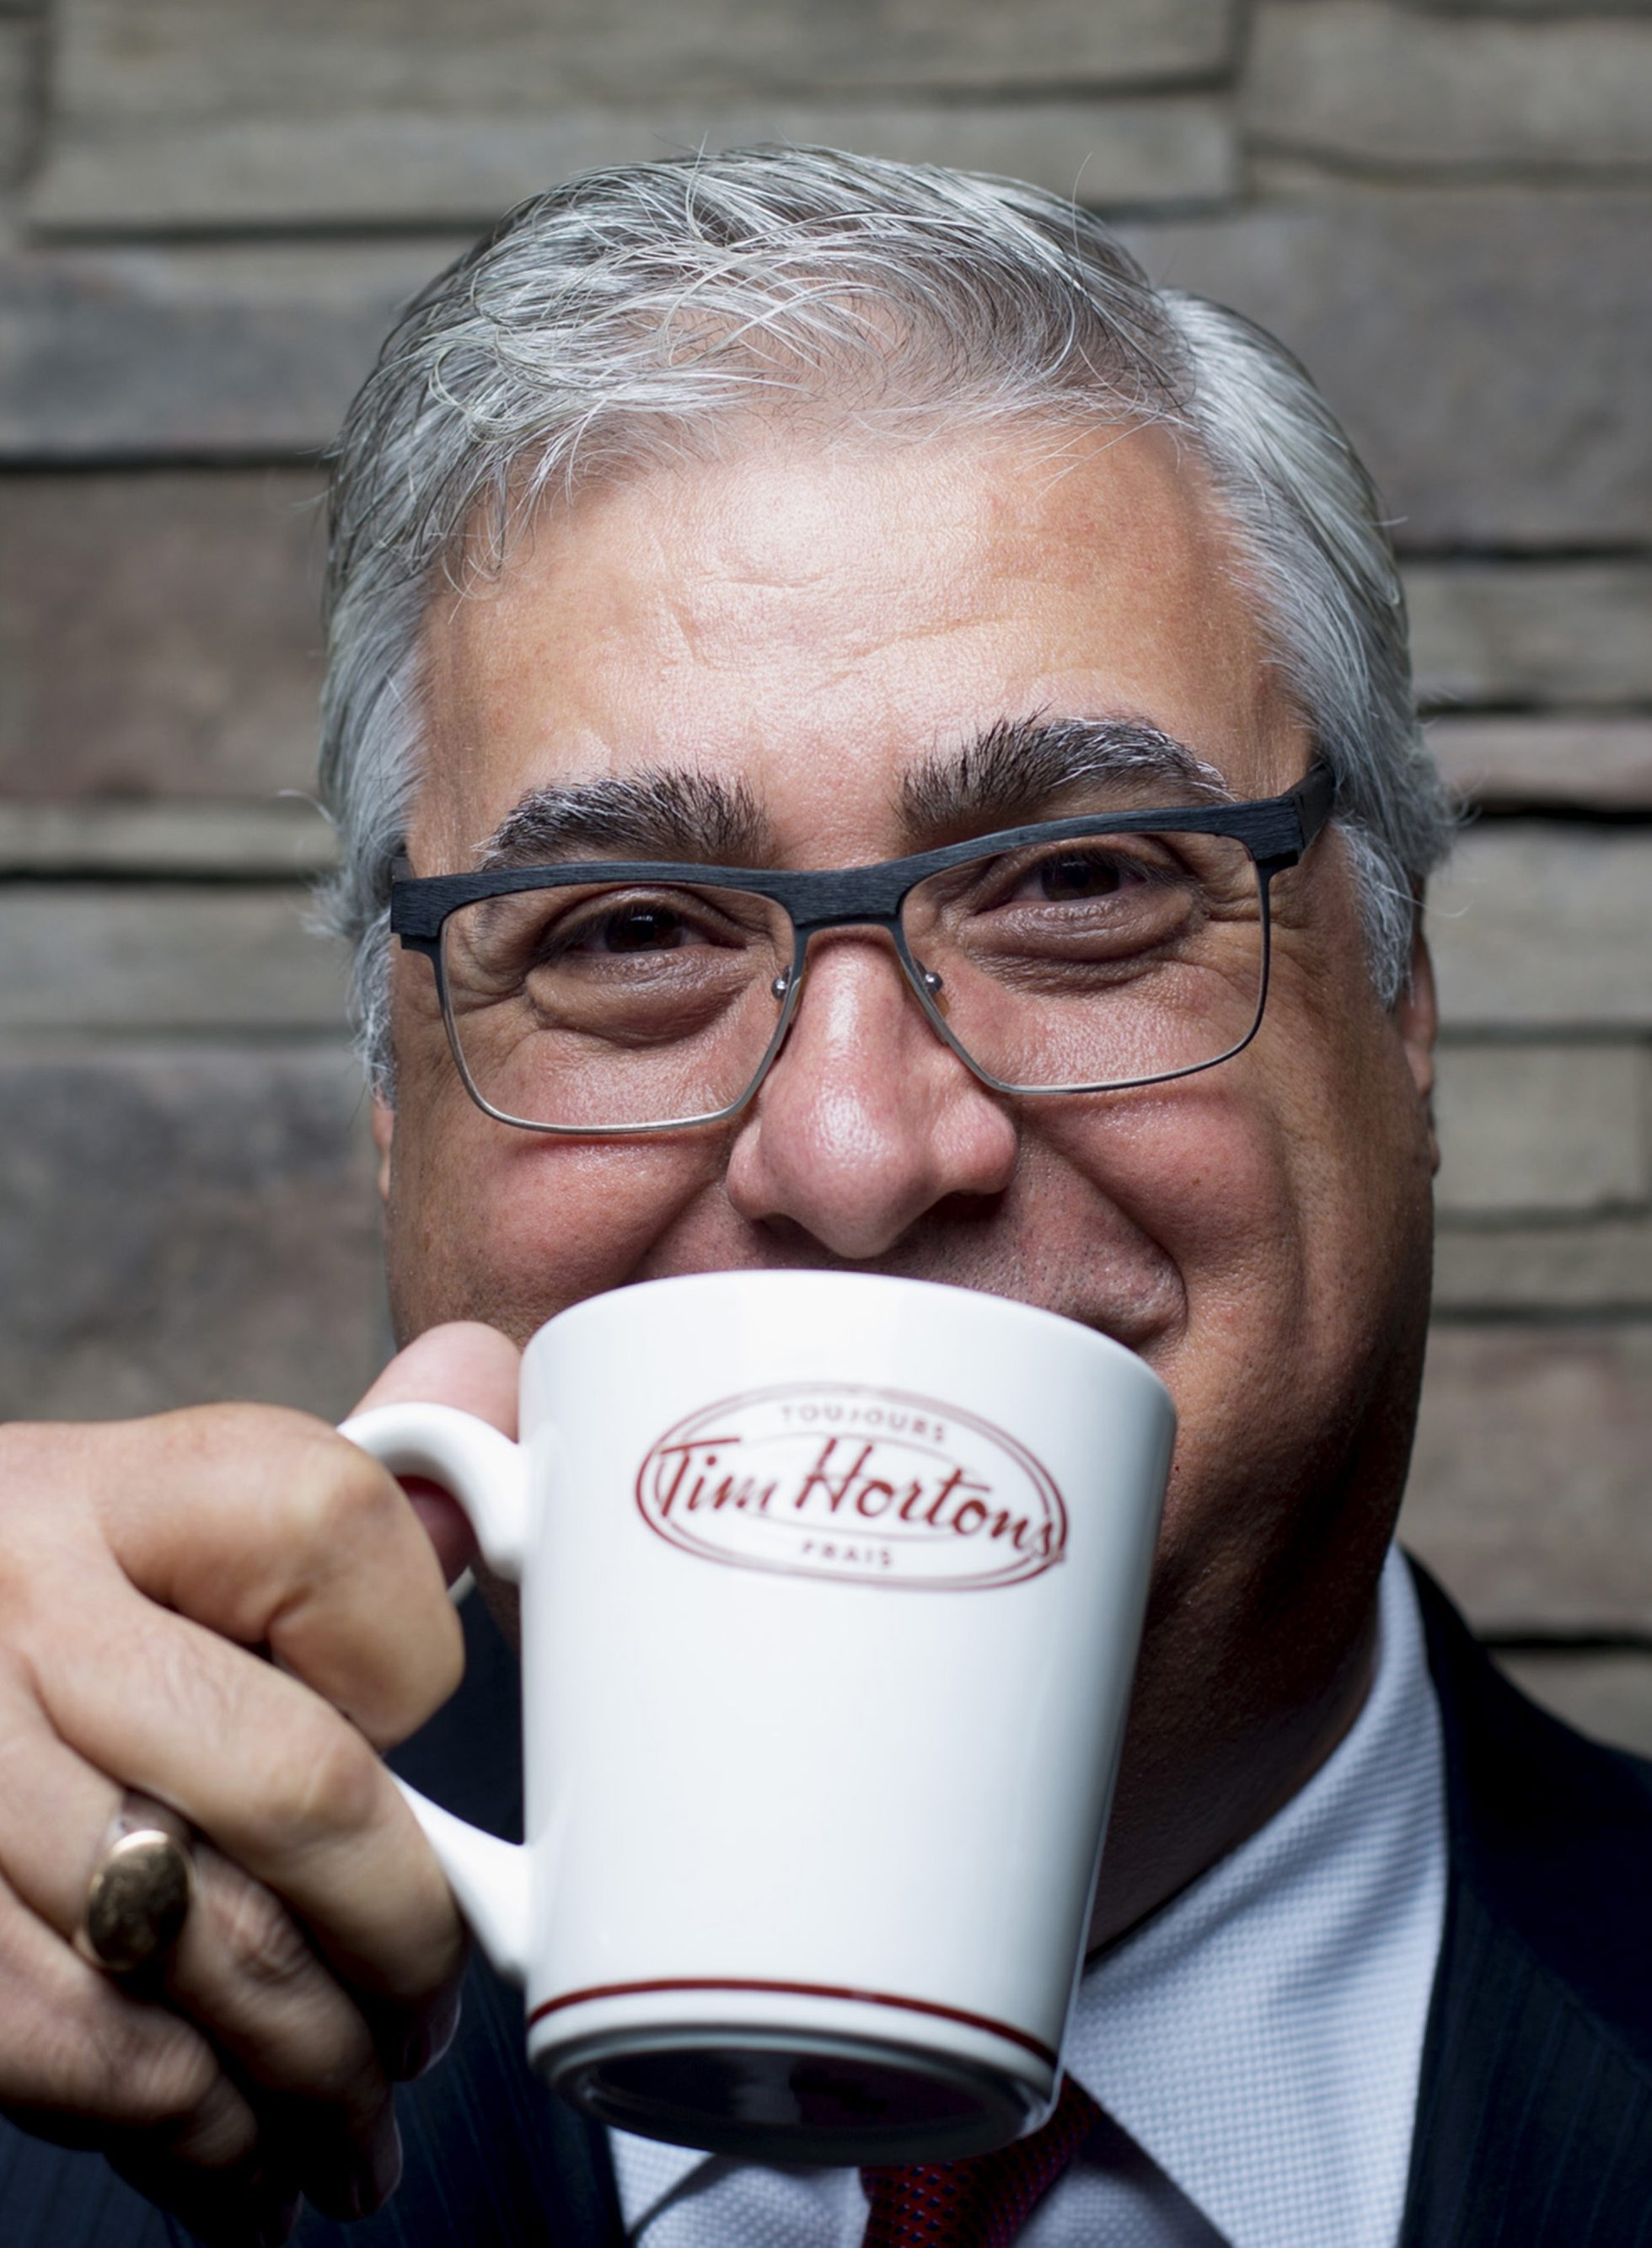 Marc Caira, president and CEO of Tim Hortons, will discuss the planned HarborCenter location.